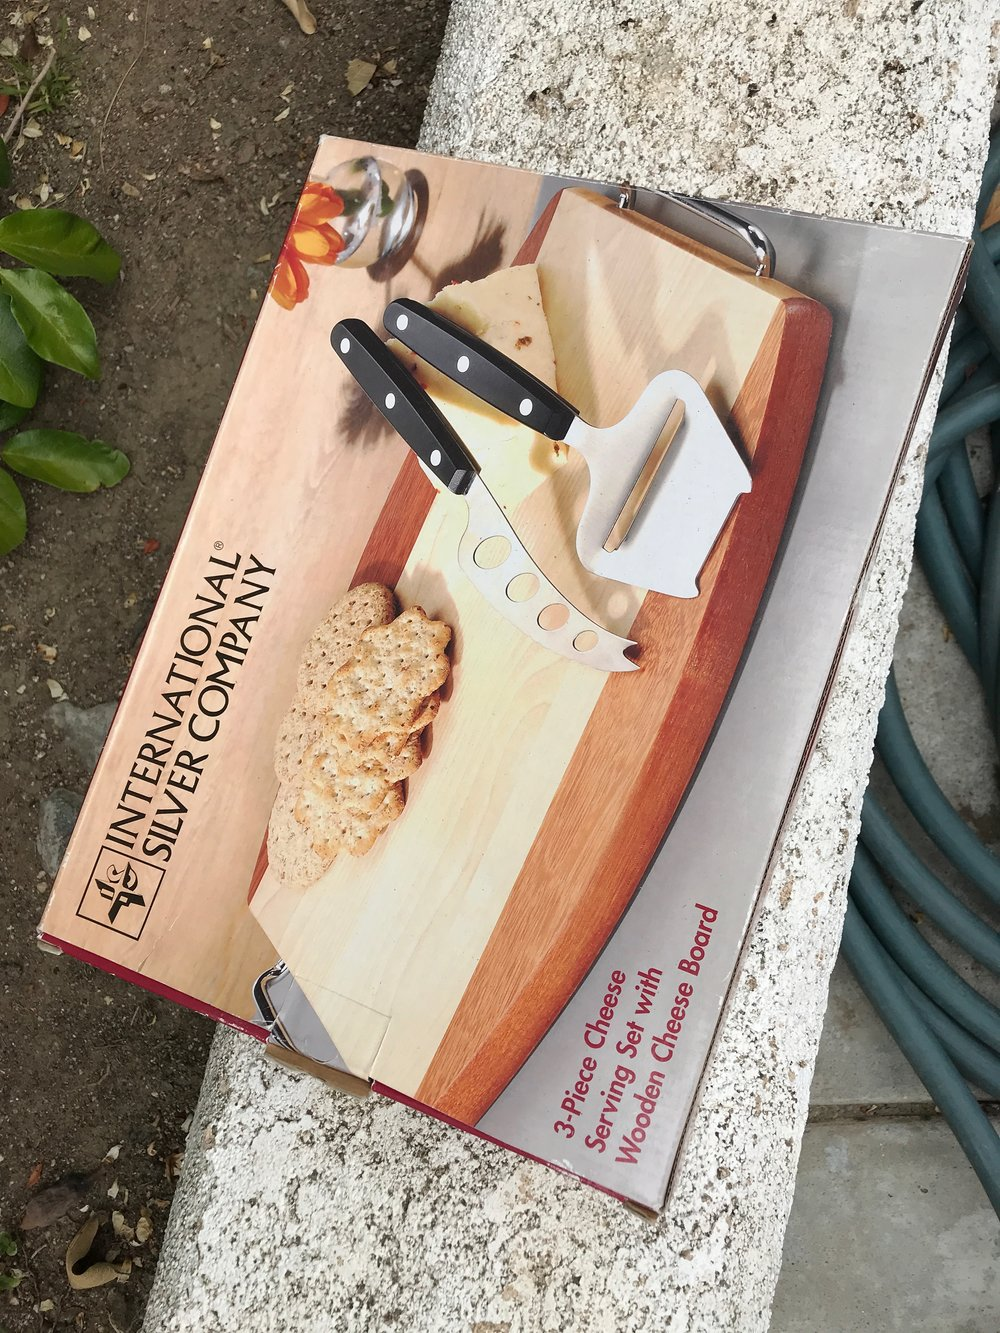 $5 BRAND NEW unopened Wooden Cheese Board - Retail: $25